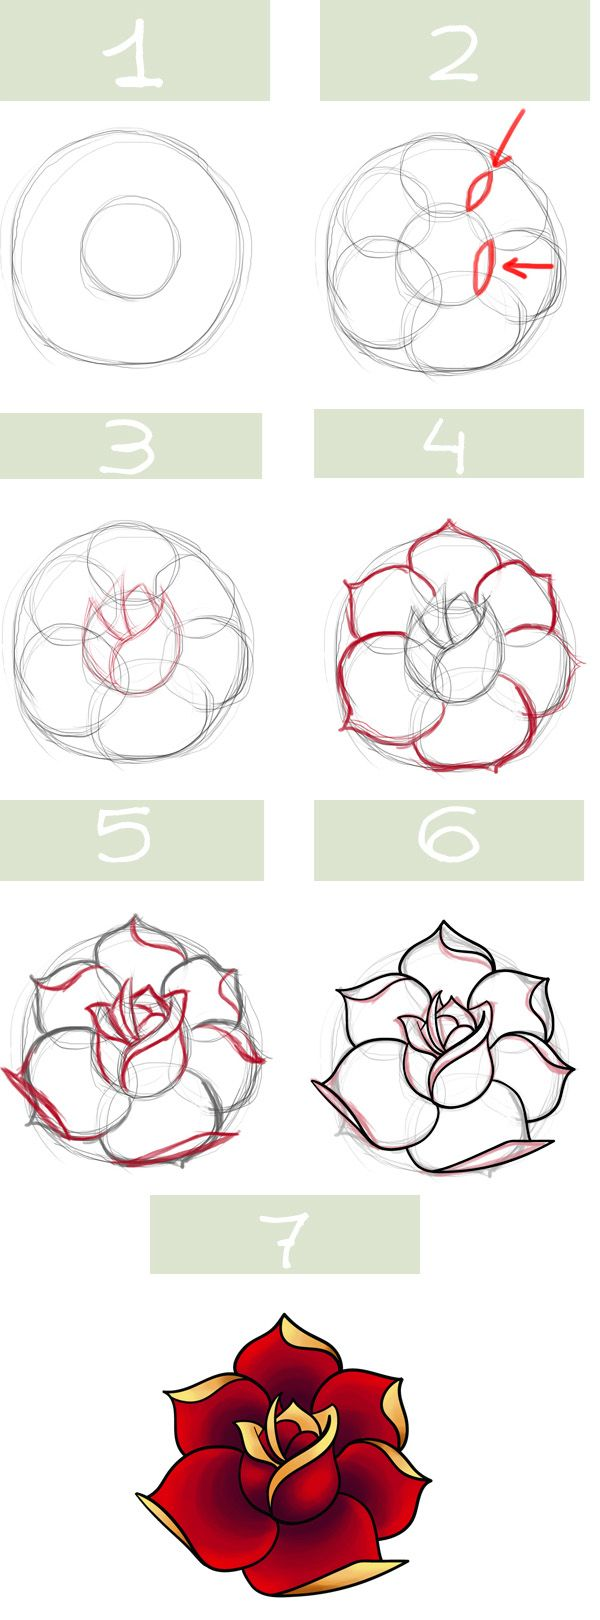 Simple roses. My kids always draw roses :/  I must show them this much better way: Simple Drawings Tutorials, Diy Drawings, Flowers Drawings Tutorials, Rose Drawings, Rose Sketch, How To Drawings, Rose Tutorials, Drawings Rose, Simple Rose